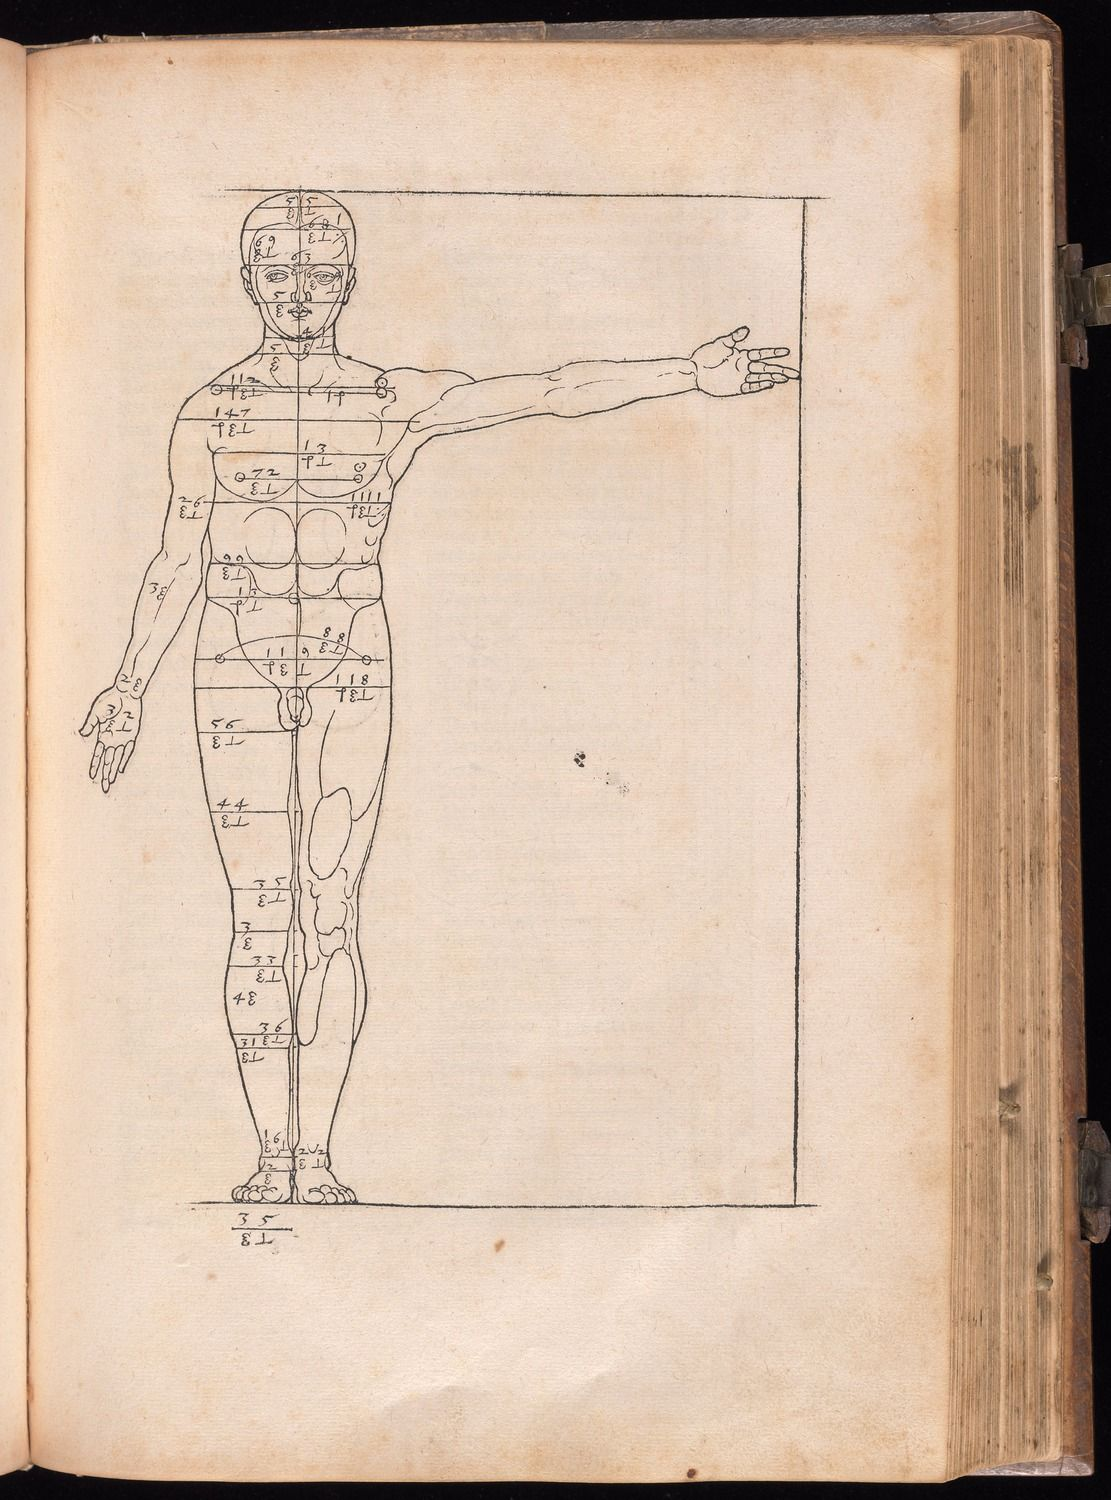 Albrecht Durer's resource for human proportions, available